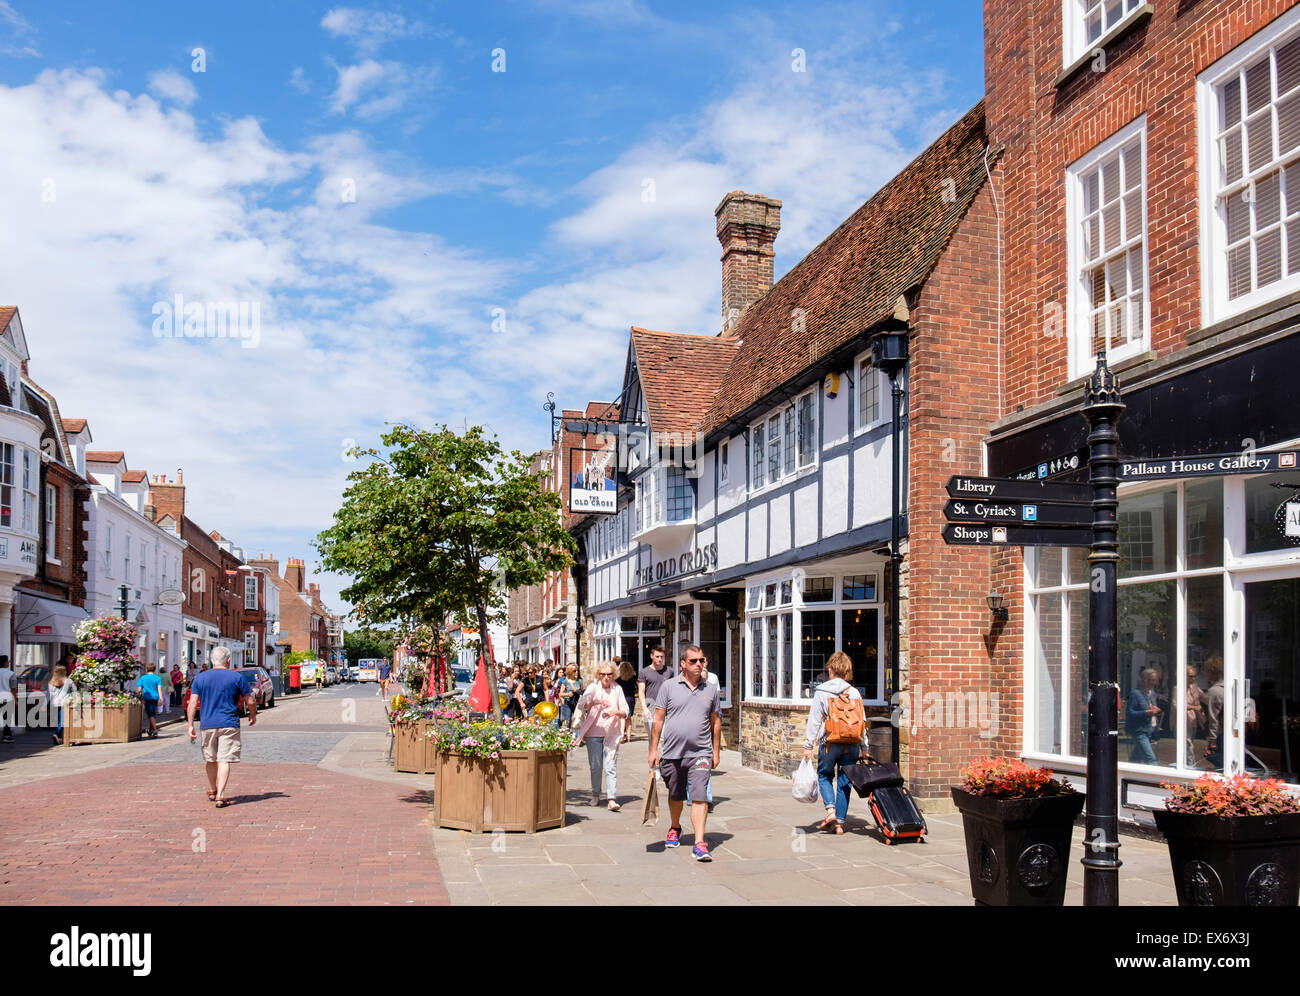 The Old Cross pub on pedestrian precinct with people in Chichester city centre in summer. North Street Chichester - Stock Image